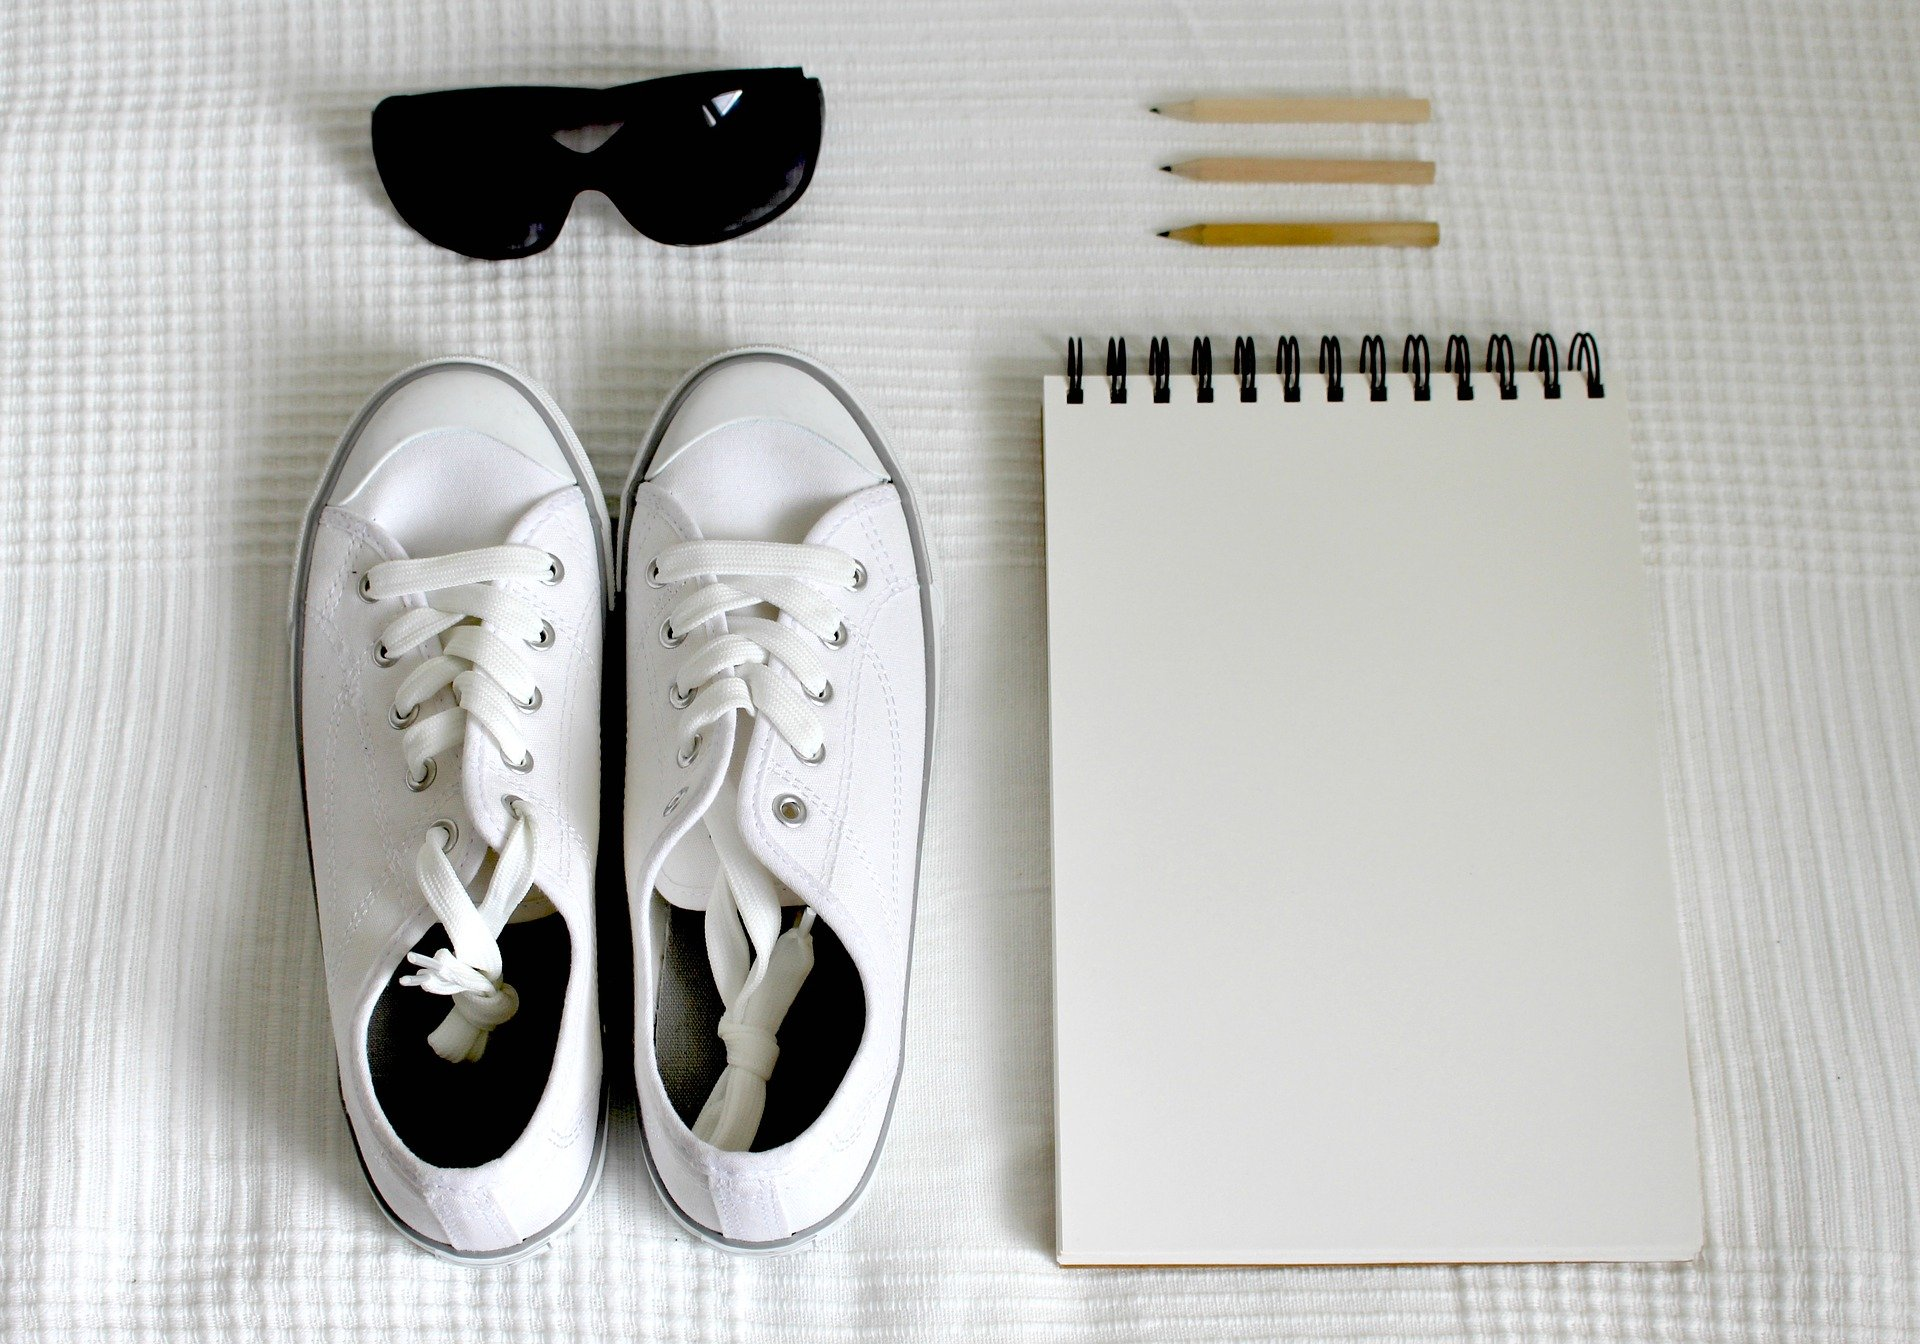 white sneakers besides a notebook and a pair of sunglasses